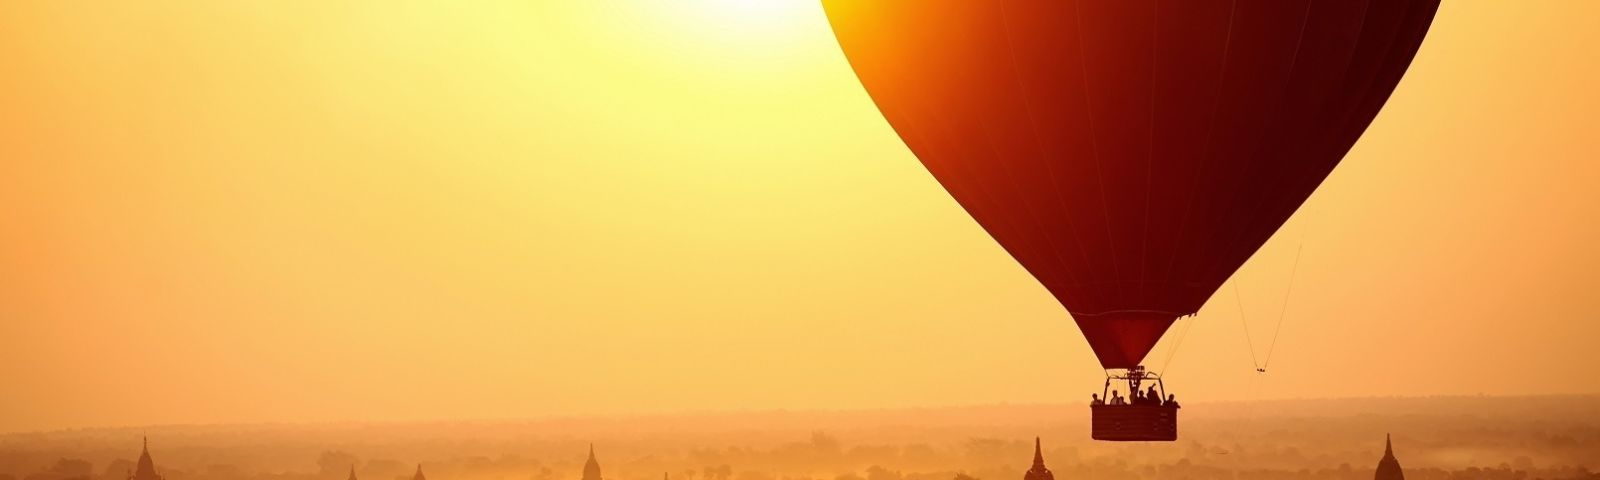 The Best Sky Safaris in Africa and Asia!